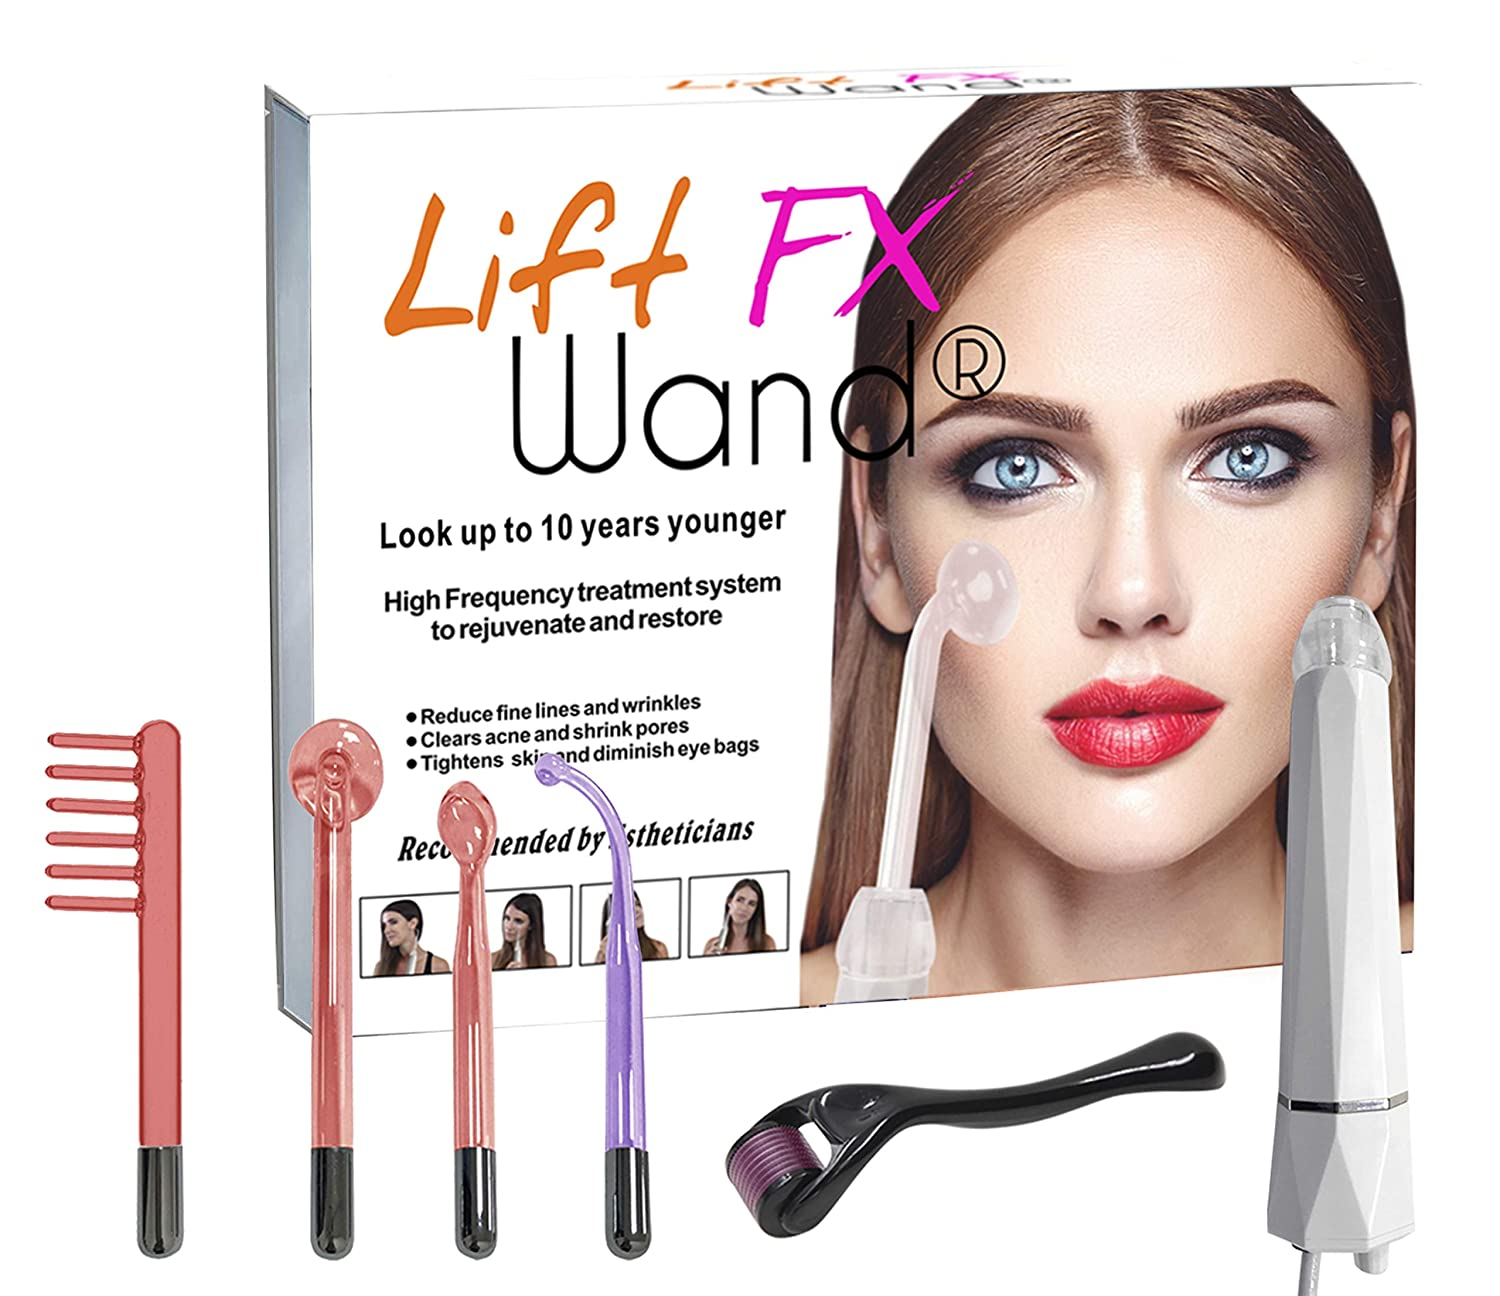 Lift Wand High Frequency Premium Anti Aging device, Eliminates Wrinkles, Skin Tightening, Acne, Dark Circles, Blemish Remover: Beauty